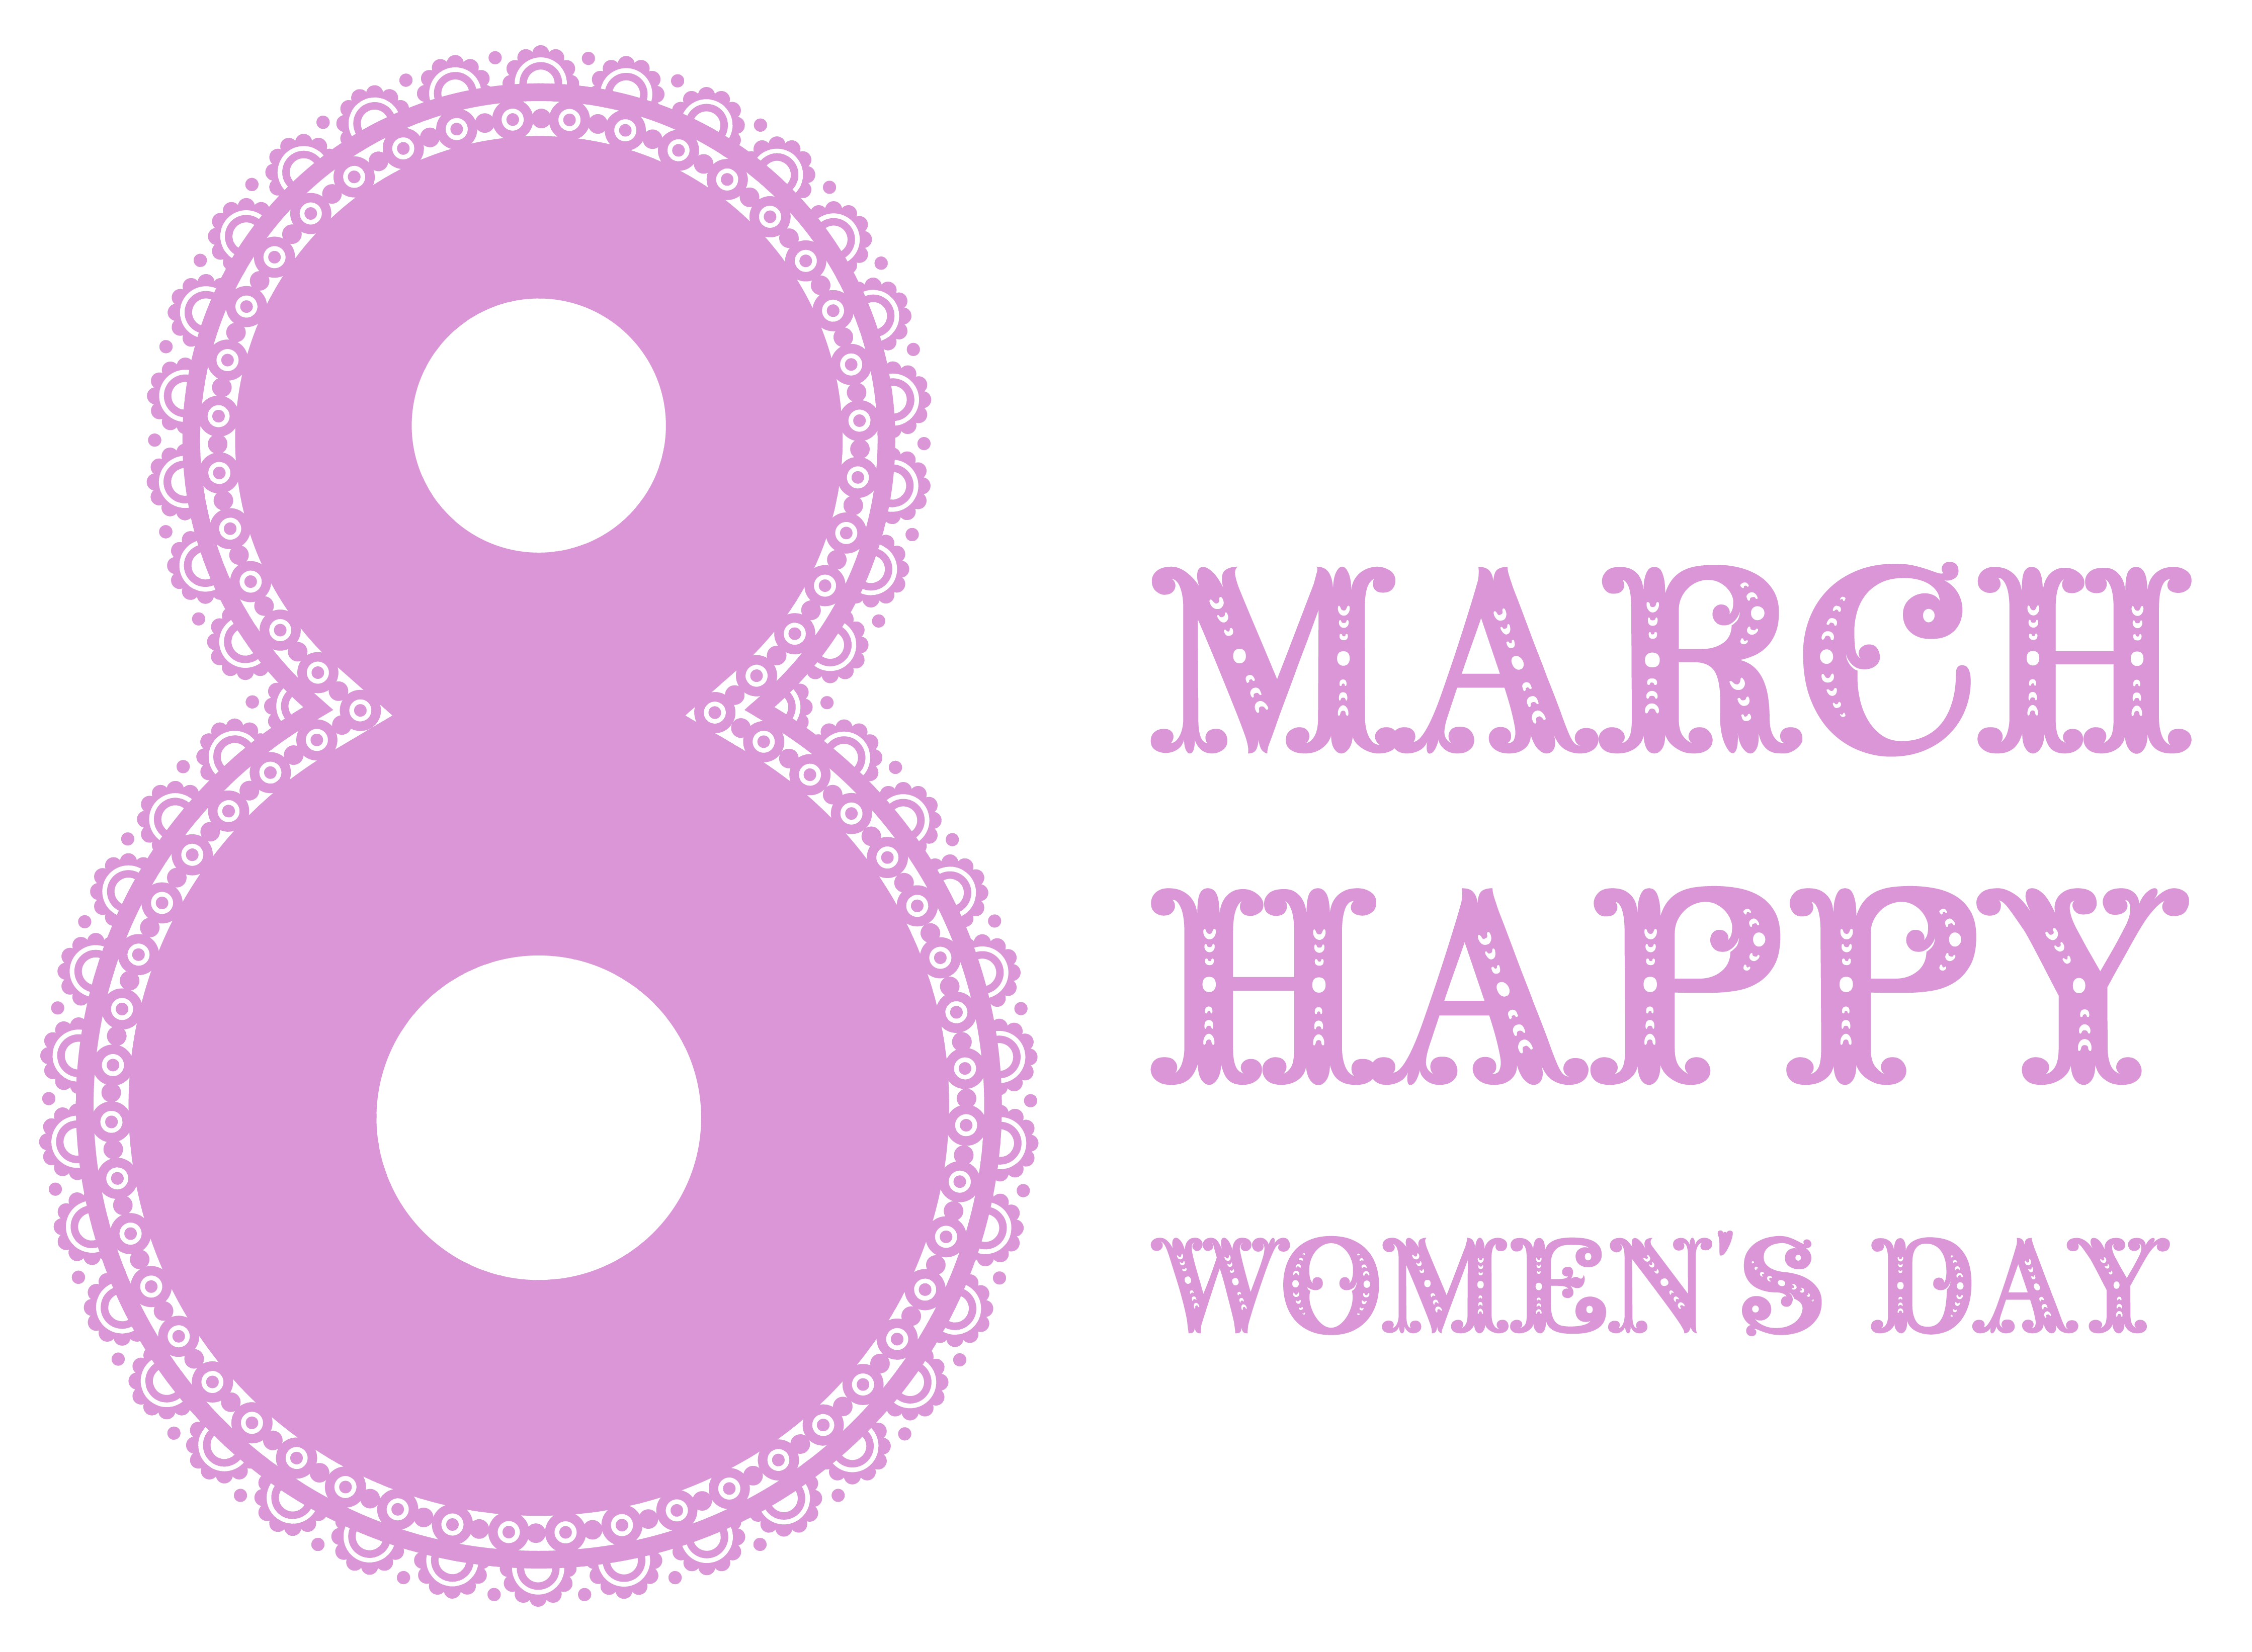 Happy Womens day 2017 Posters clipart Latest unique IWD cards with.